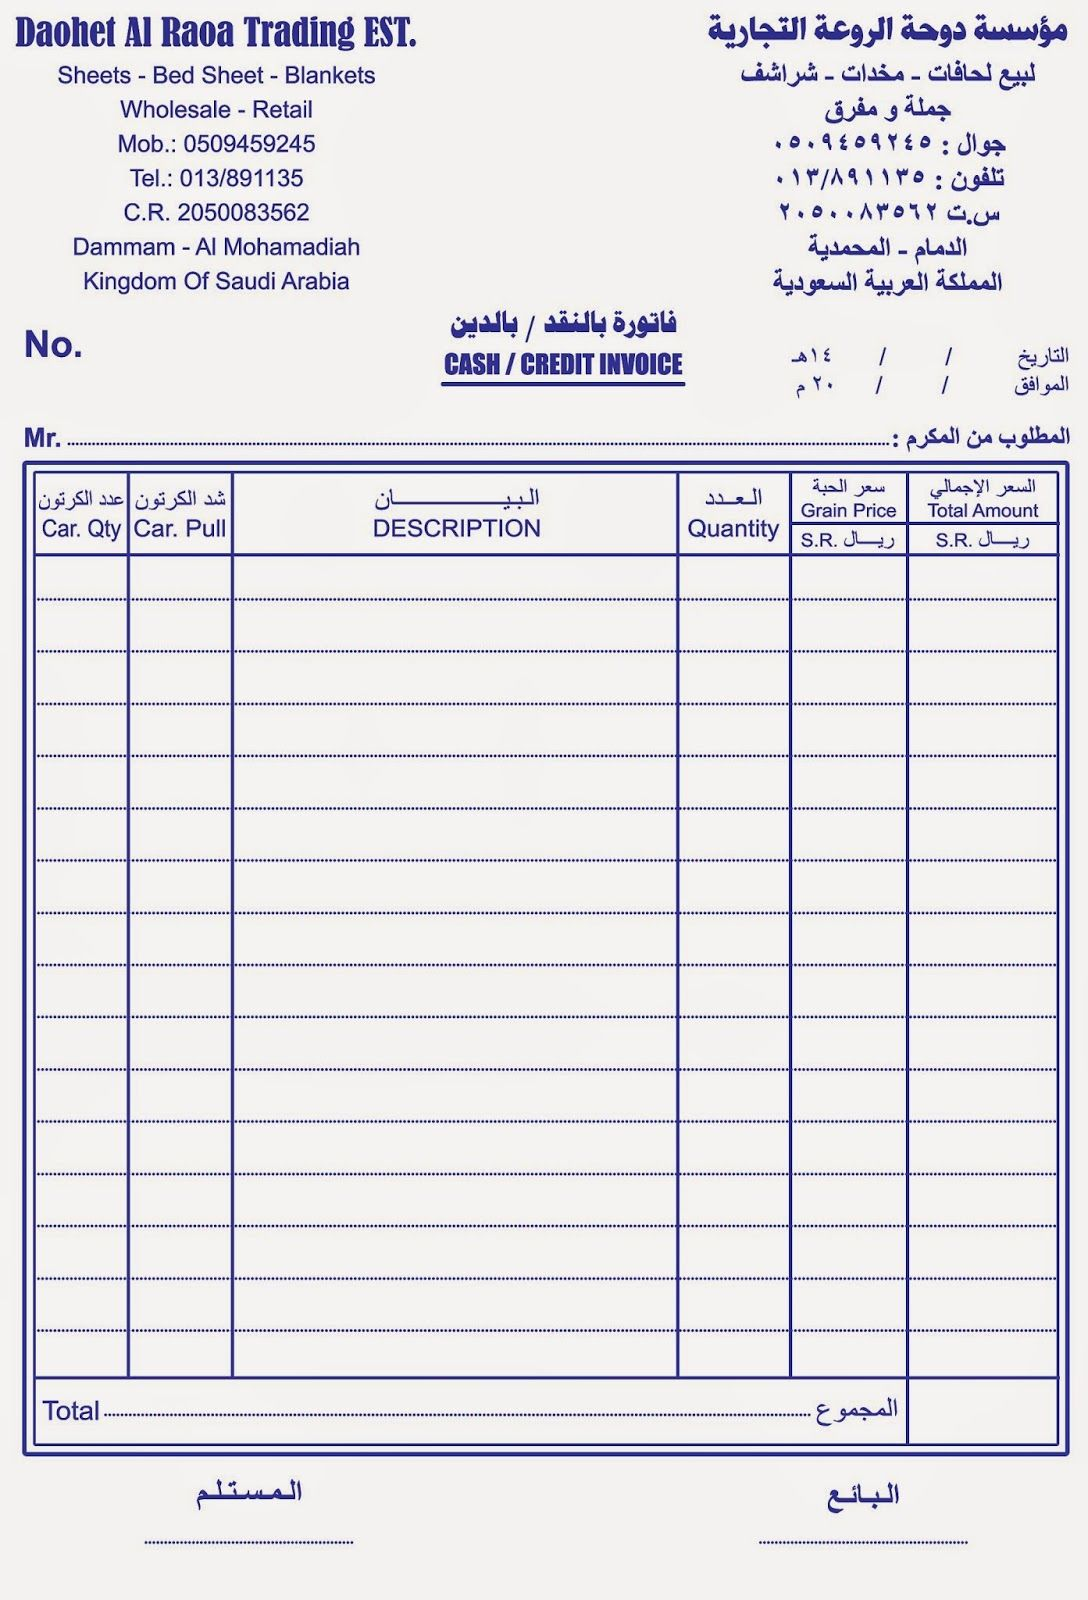 Image Result For نموذج فاتورة ورشة سيارات Cleaning Schedule Templates Invoice Sample Questionnaire Template